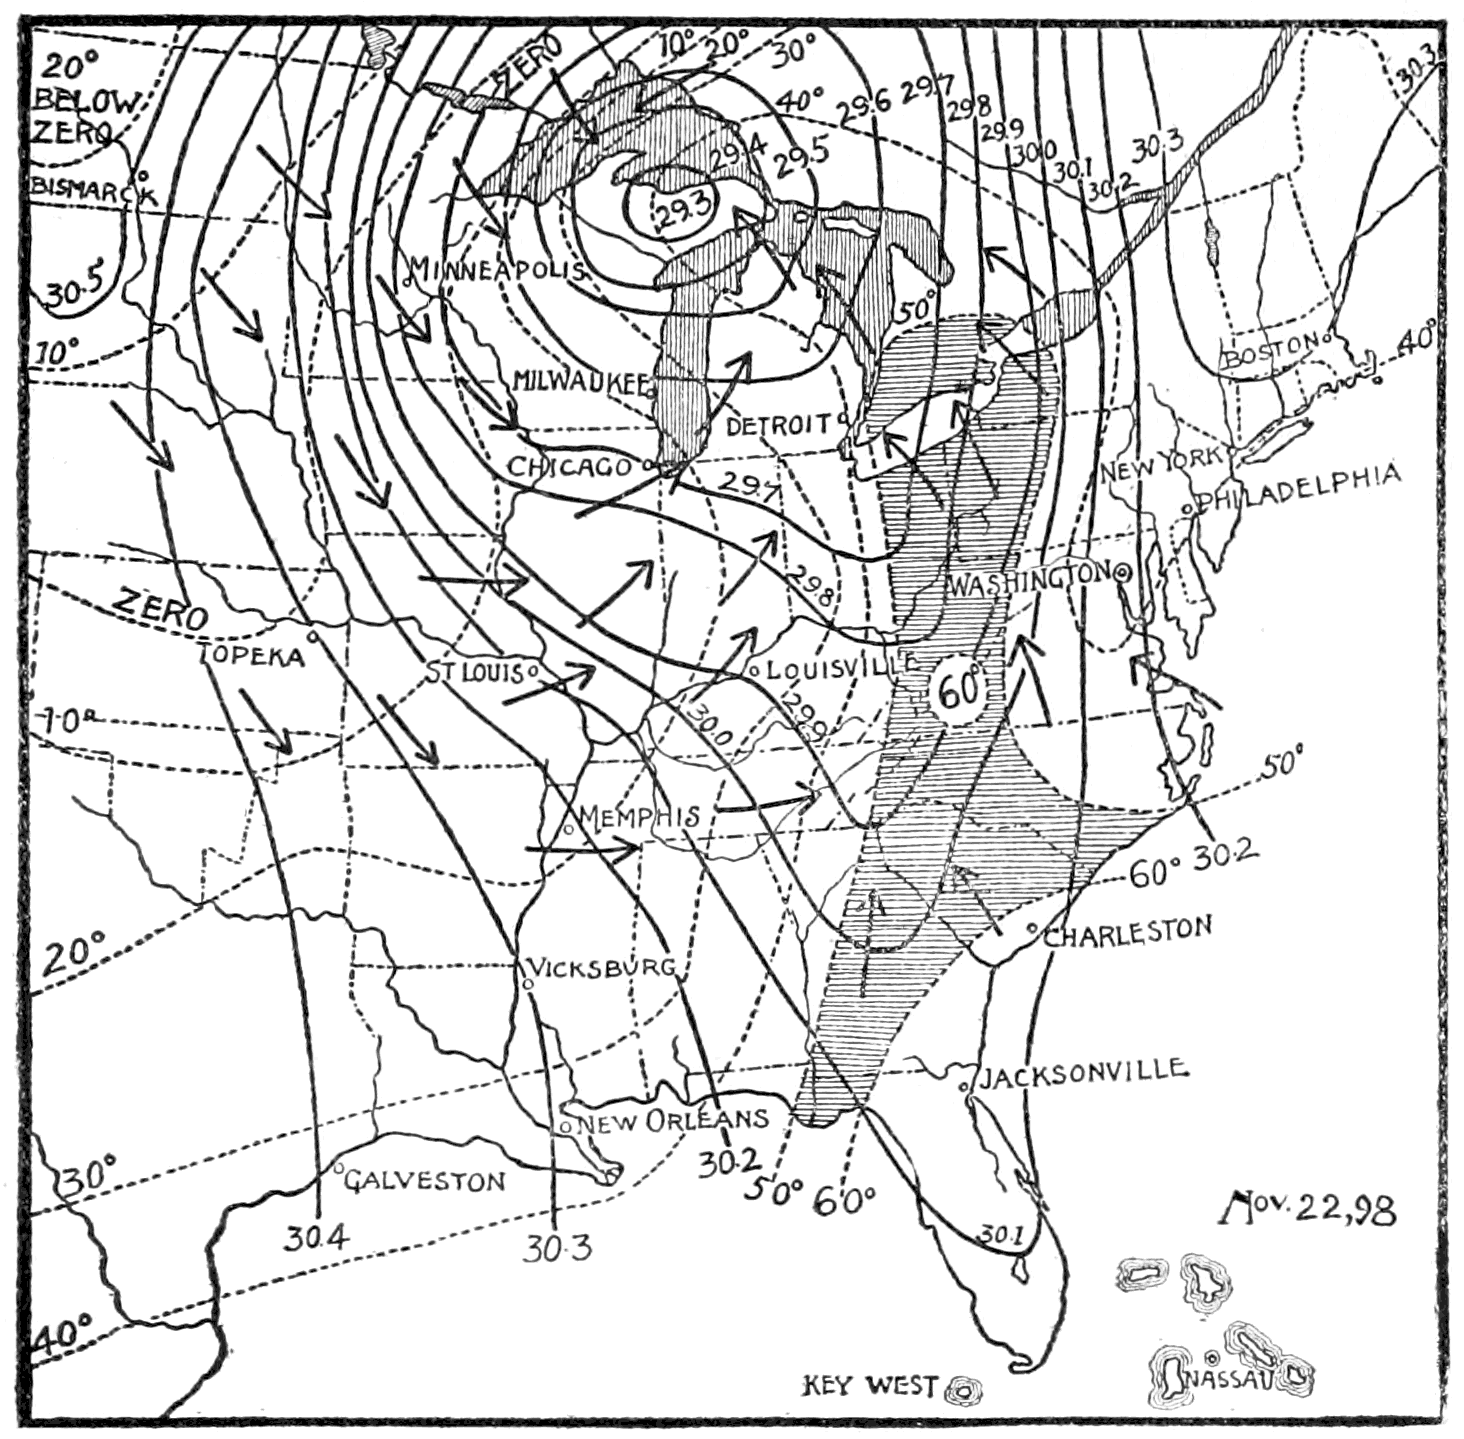 PSM V58 D397 Cyclone pattern and changing temperatures of nov 22 1898.png